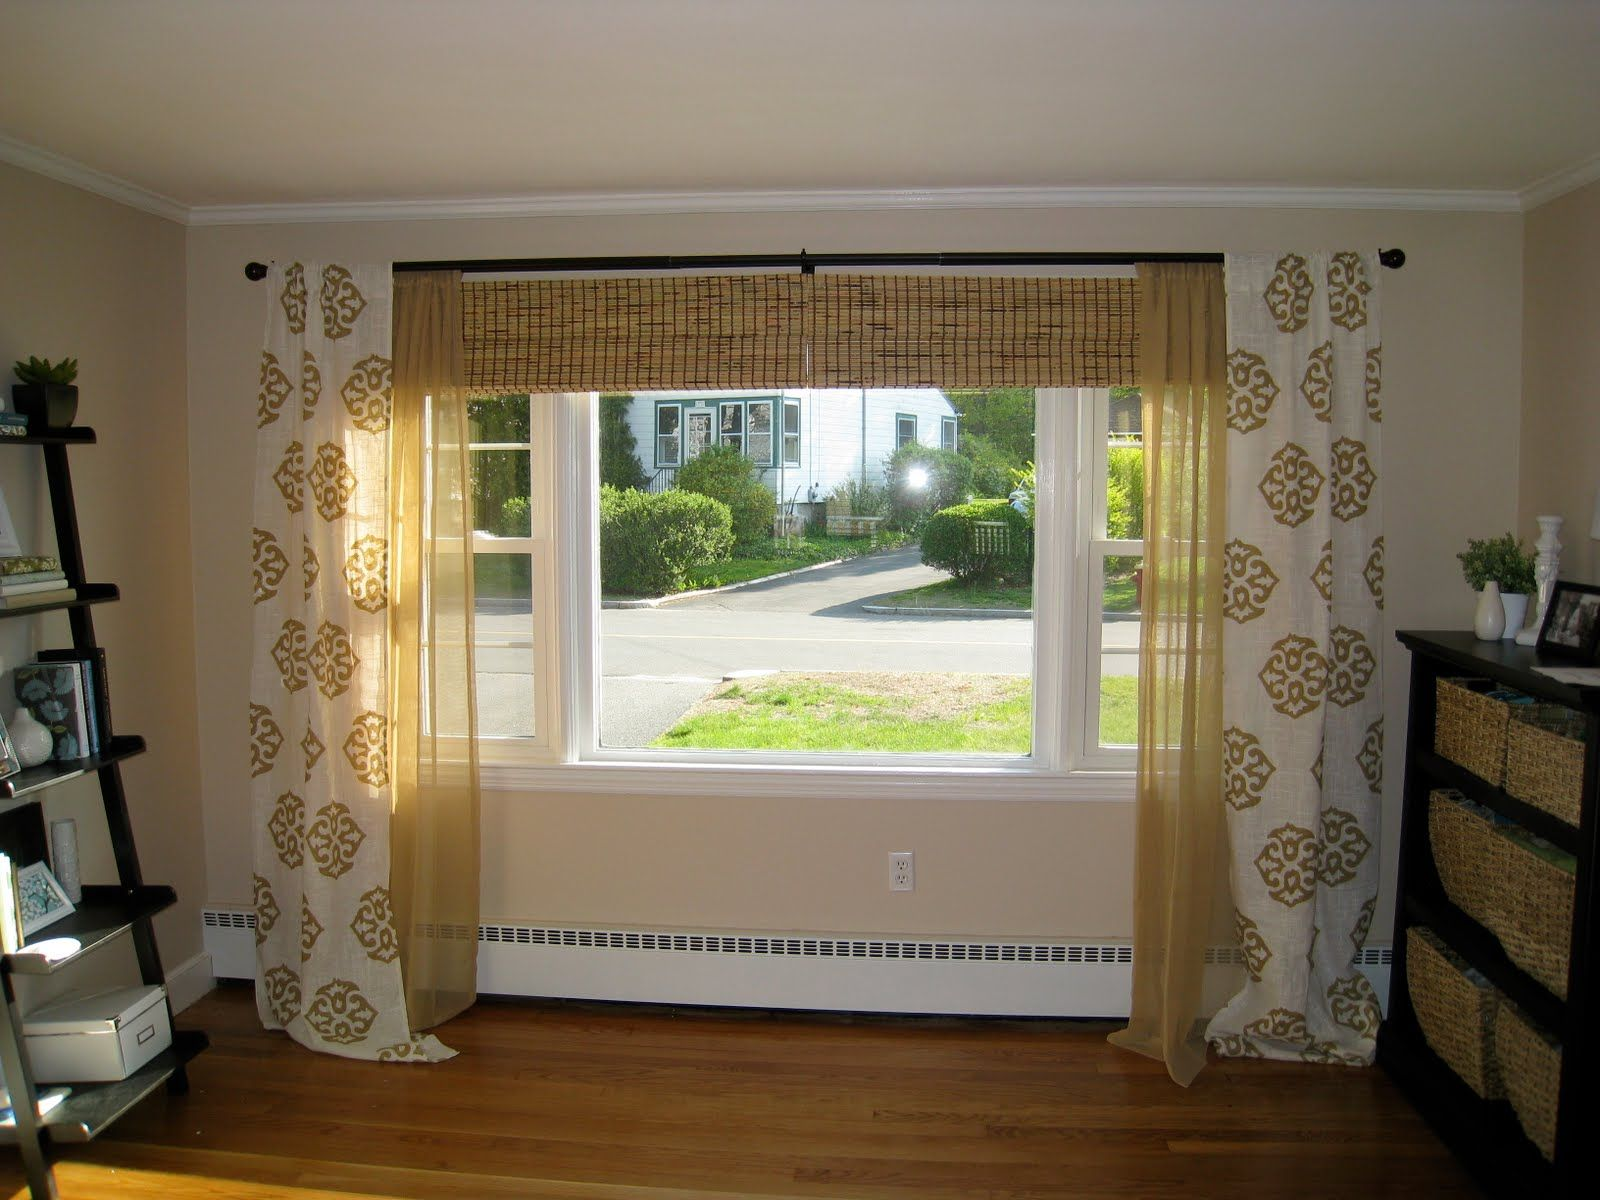 Window treatment ideas for large windows - Window Ideas For Living Room Curtains Round 3 Large Window Treatmentsliving